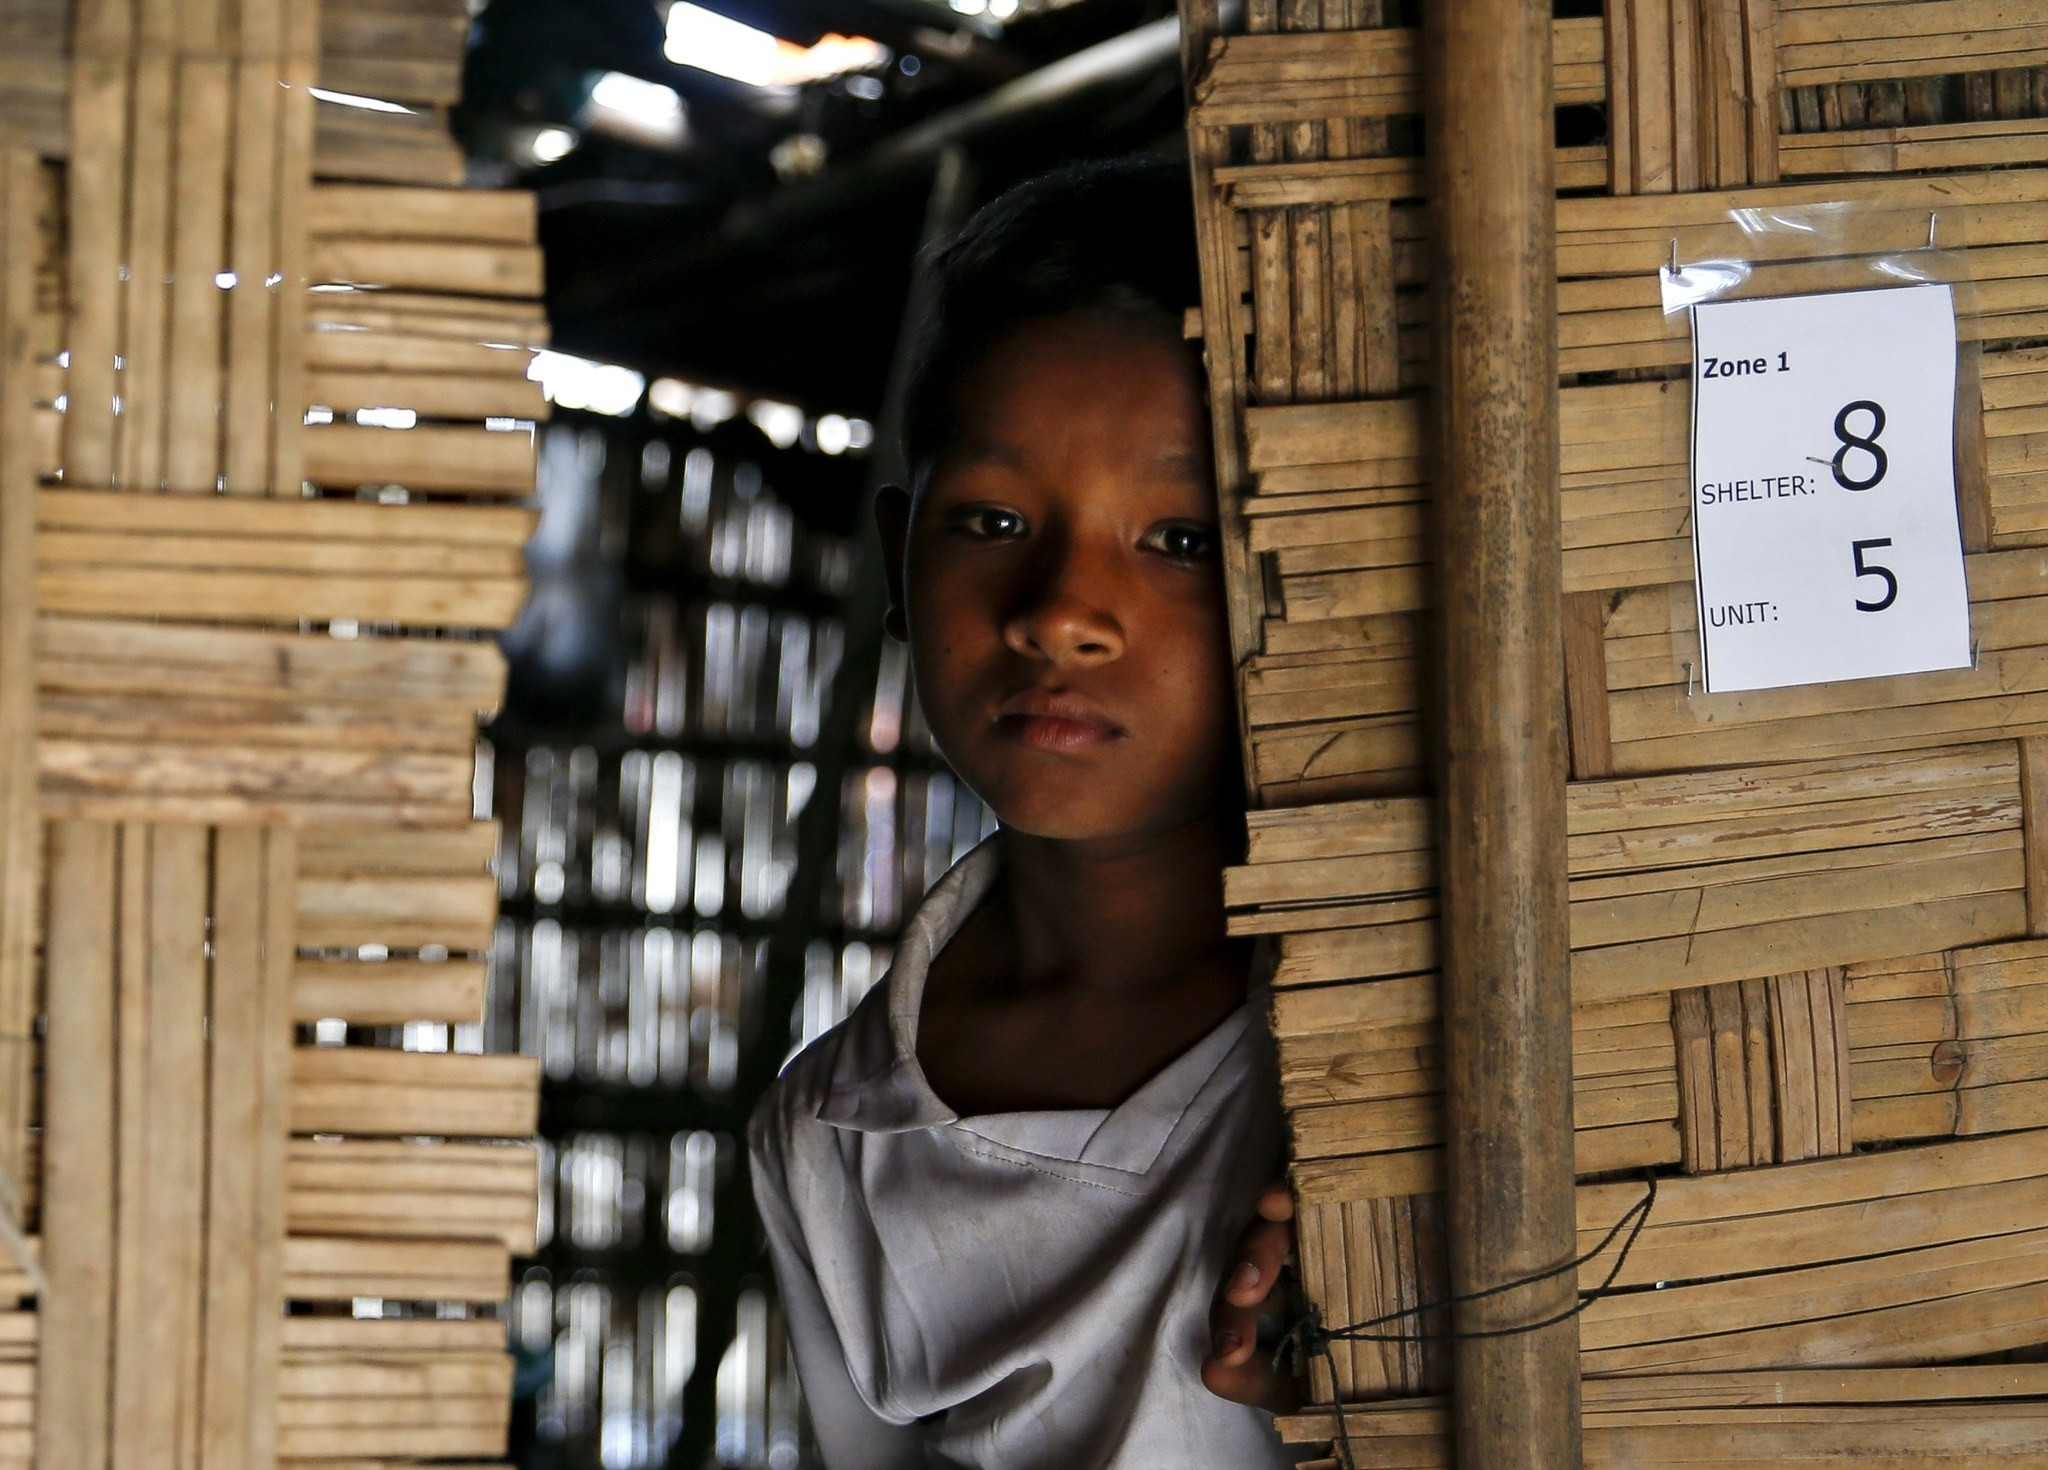 Nabeel Hyseub, 10, a Muslim Rohingya boy, stands inside a shelter at Thet Kel Pyin, an internally displaced person (IDP) camp, in Rakhine State.